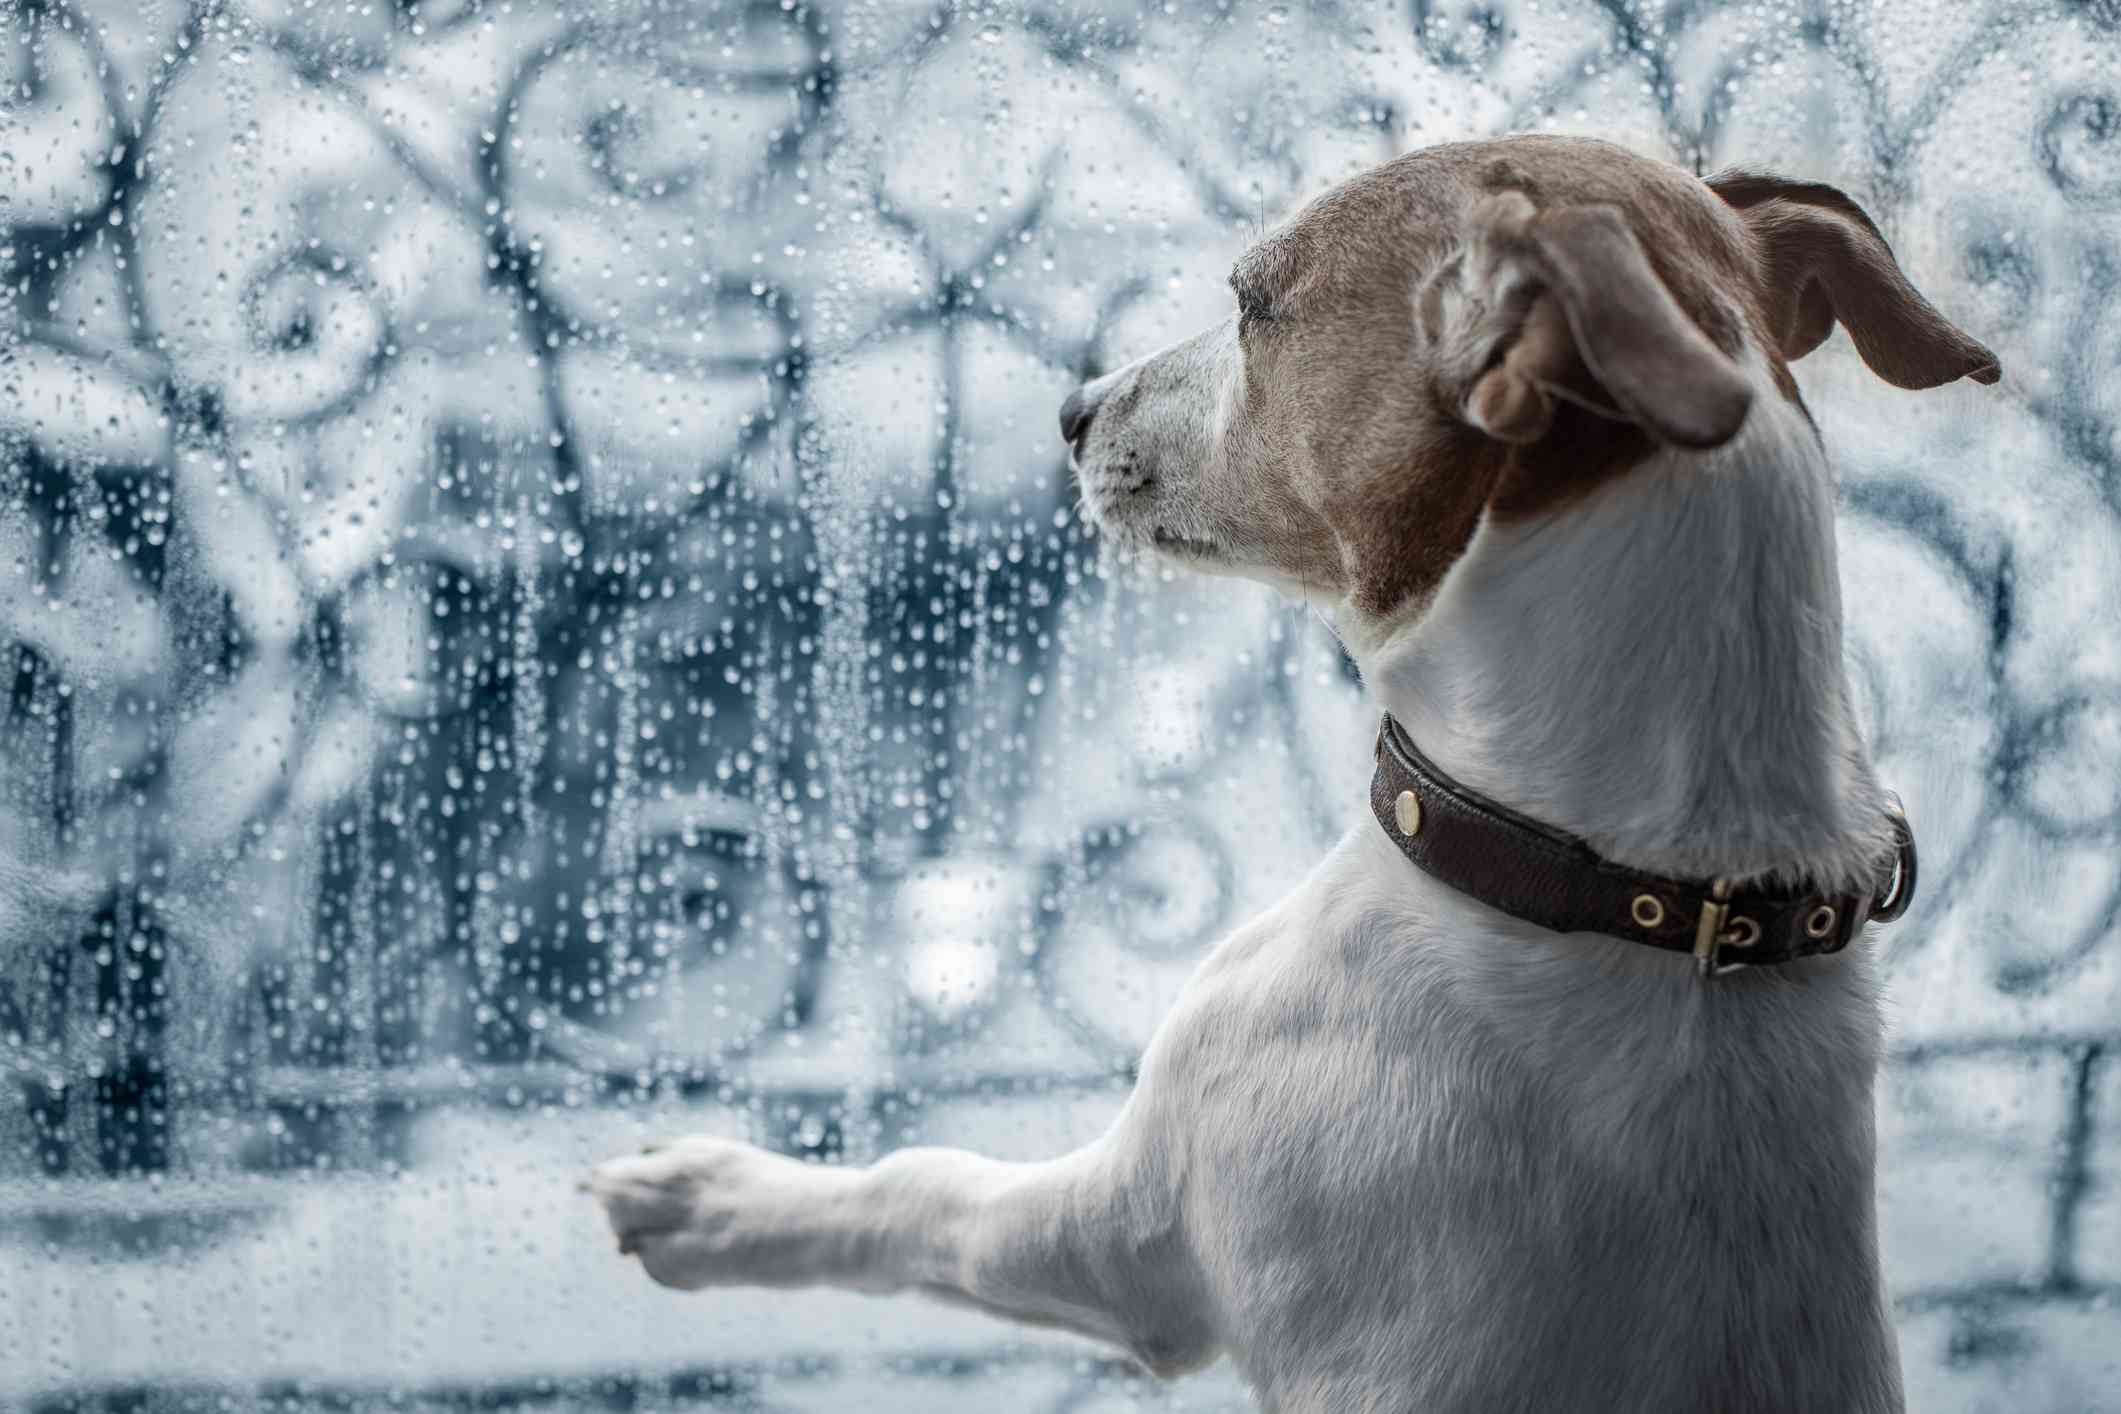 A Jack Russell terrier stares out of the window on a rainy day.